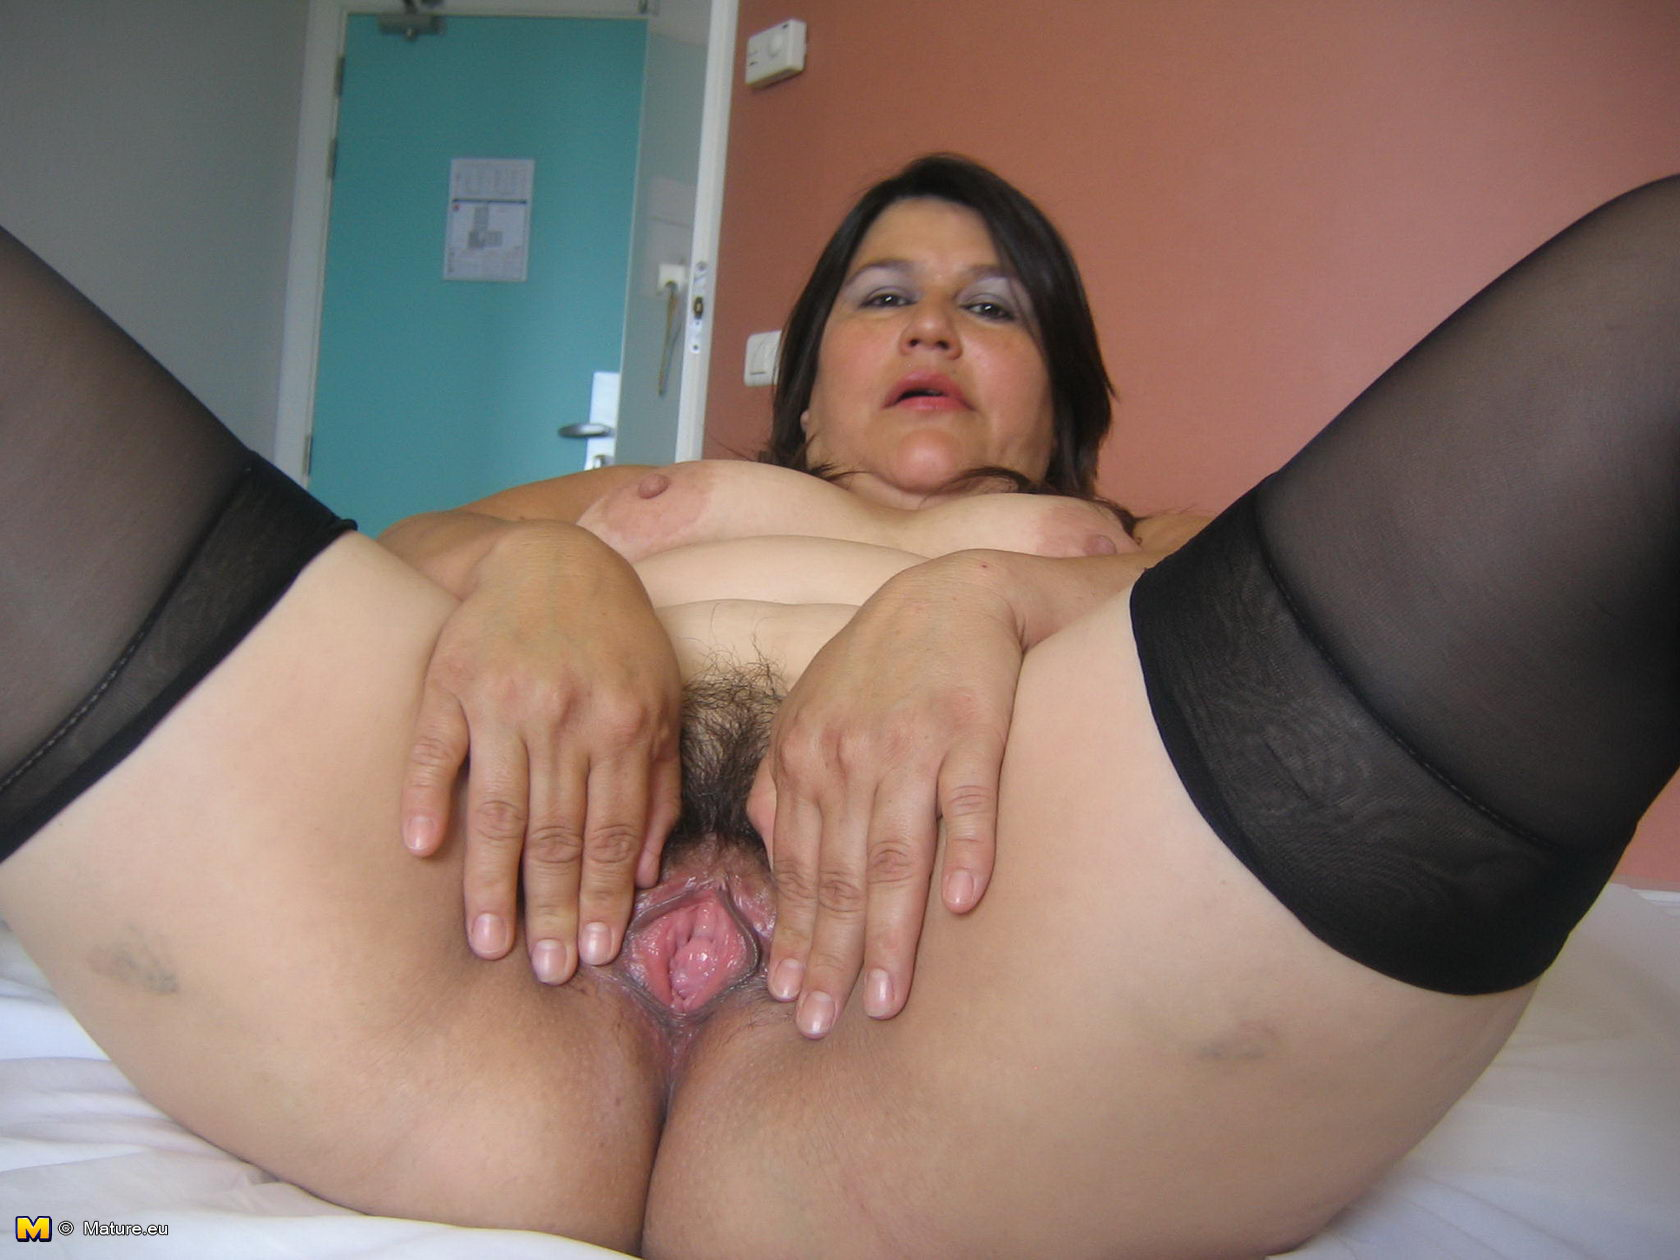 Fat women blood porno videos erotica comic